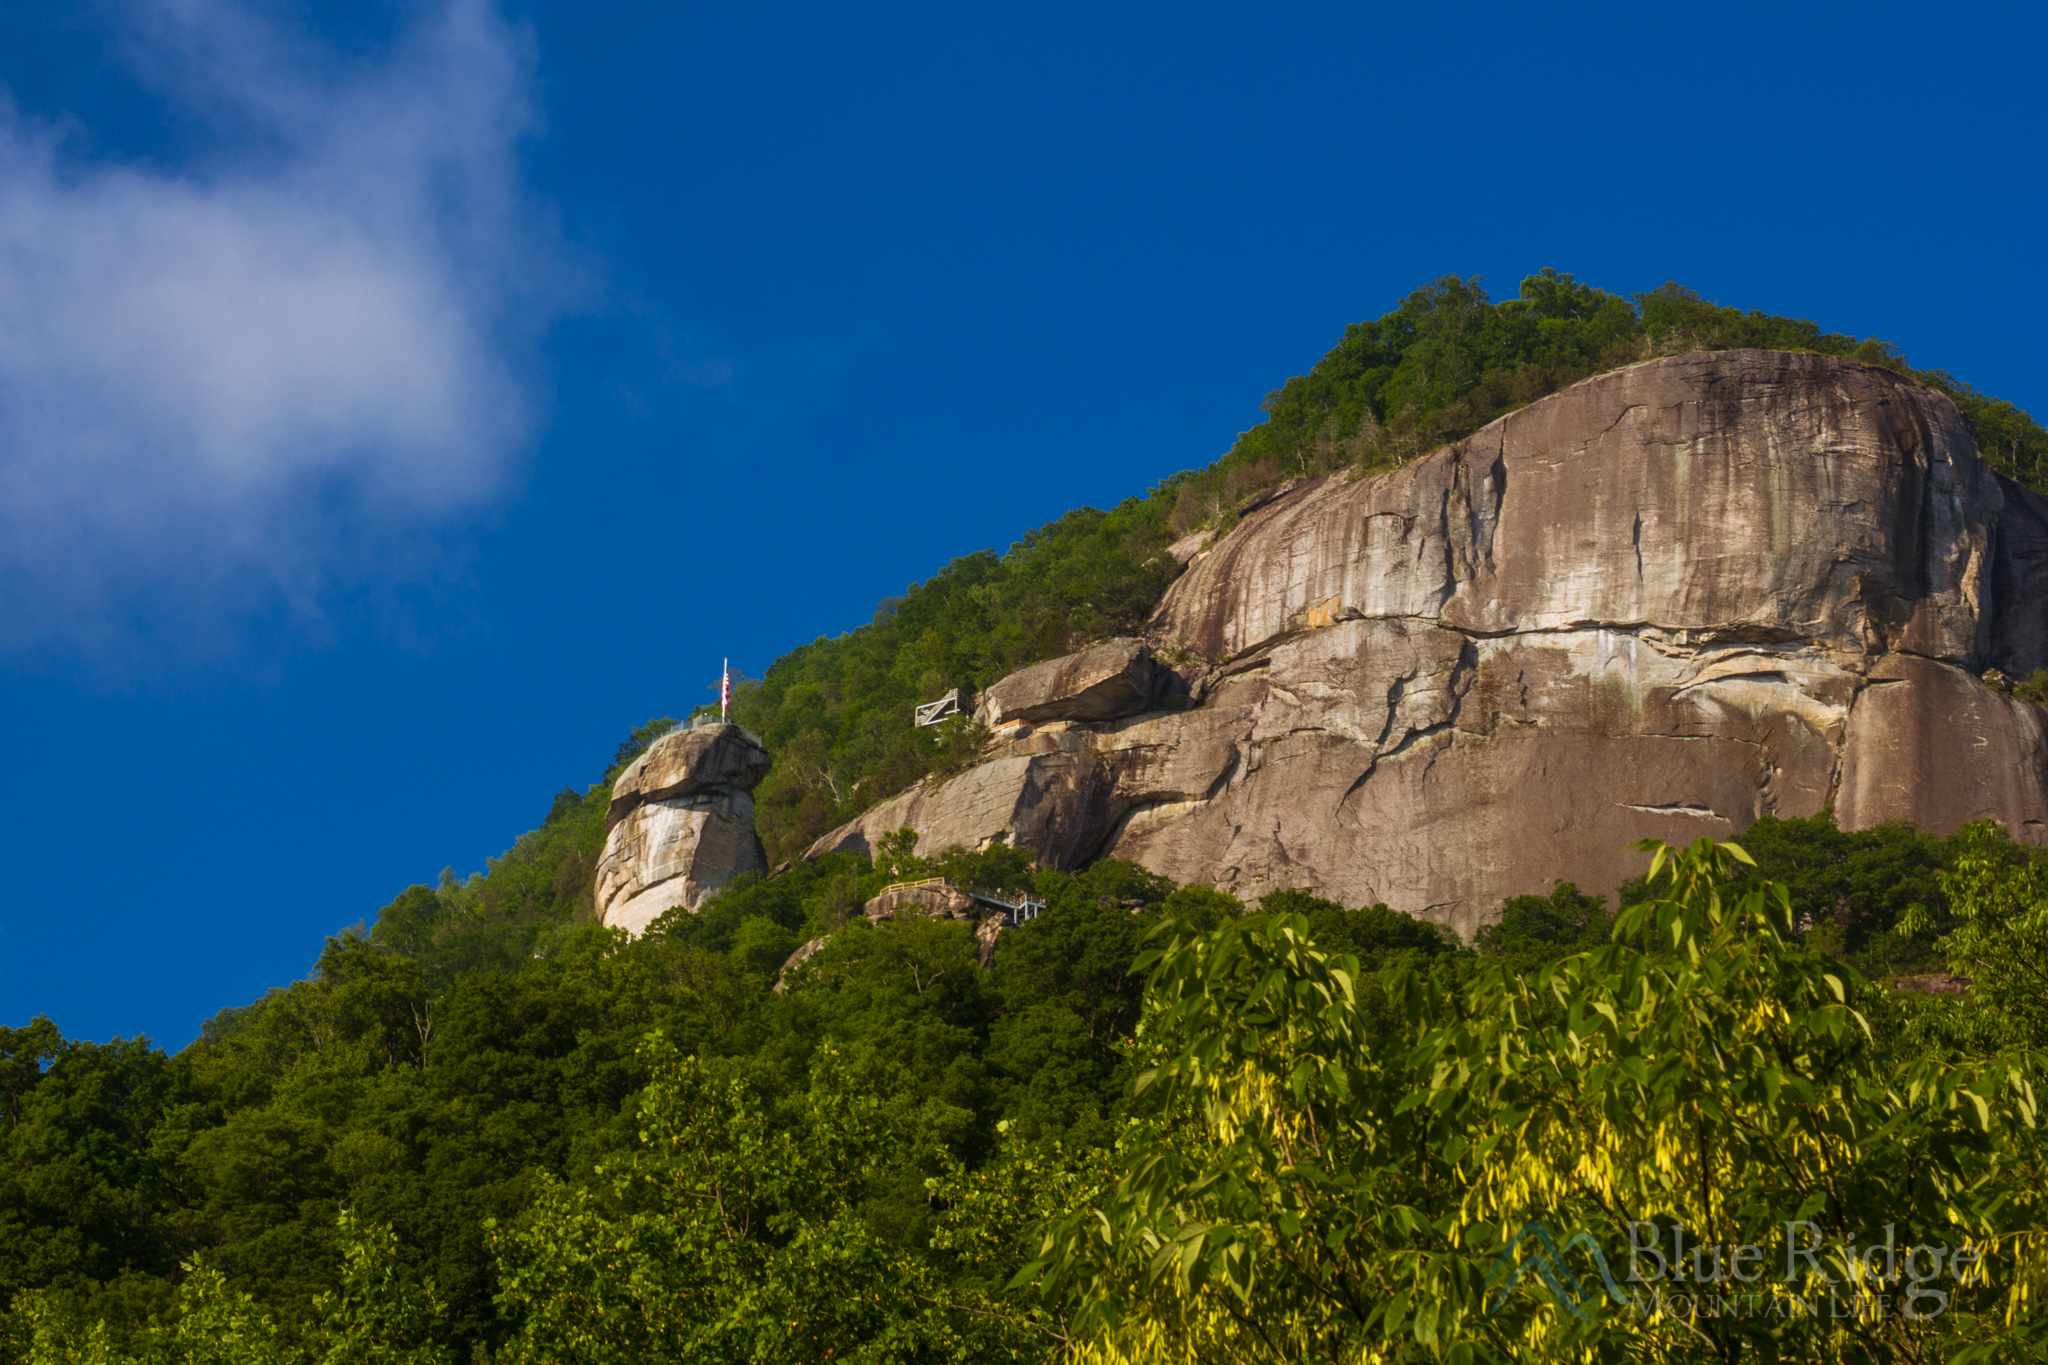 Chimney Rock State Park, viewed from the town of Chimney Rock